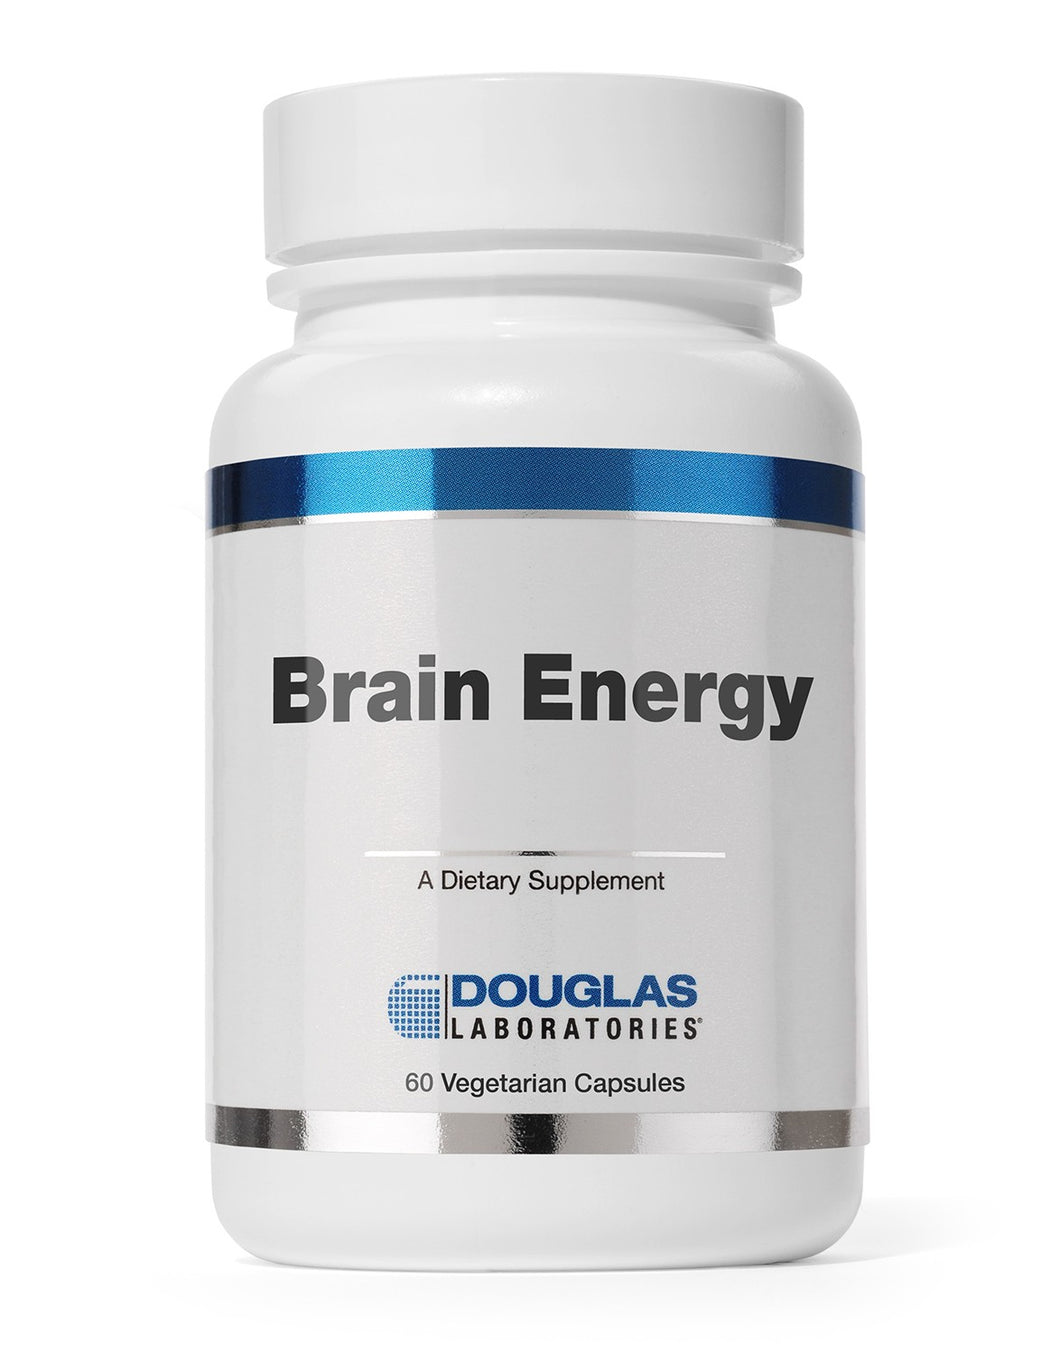 BRAIN ENERGY 60 Vegetarian Capsules Douglas Laboratories